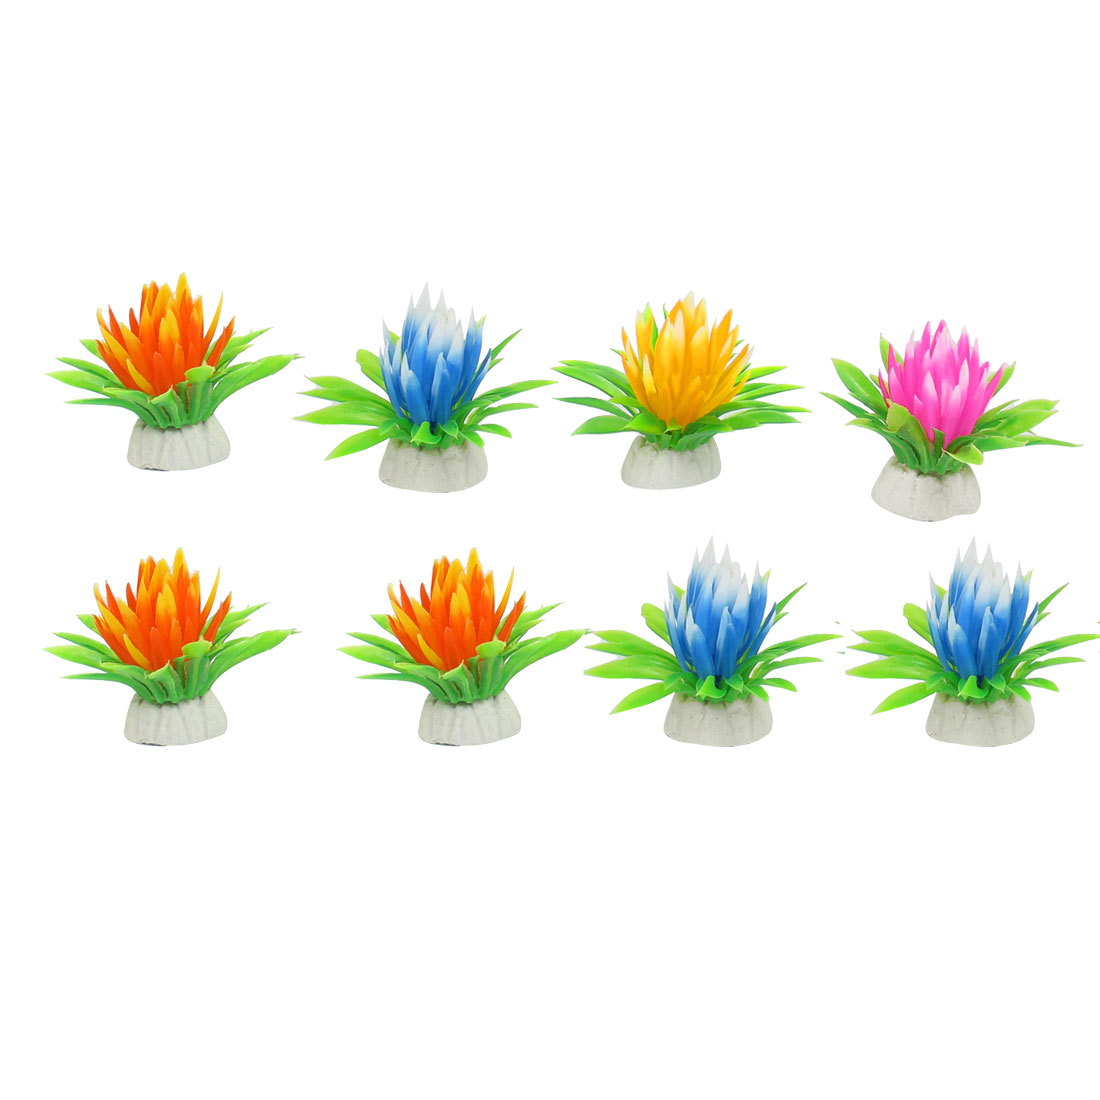 8 Pcs Orange Blue Pink Plastic Water Lily Flower Simulation Aquatic Plant Decor